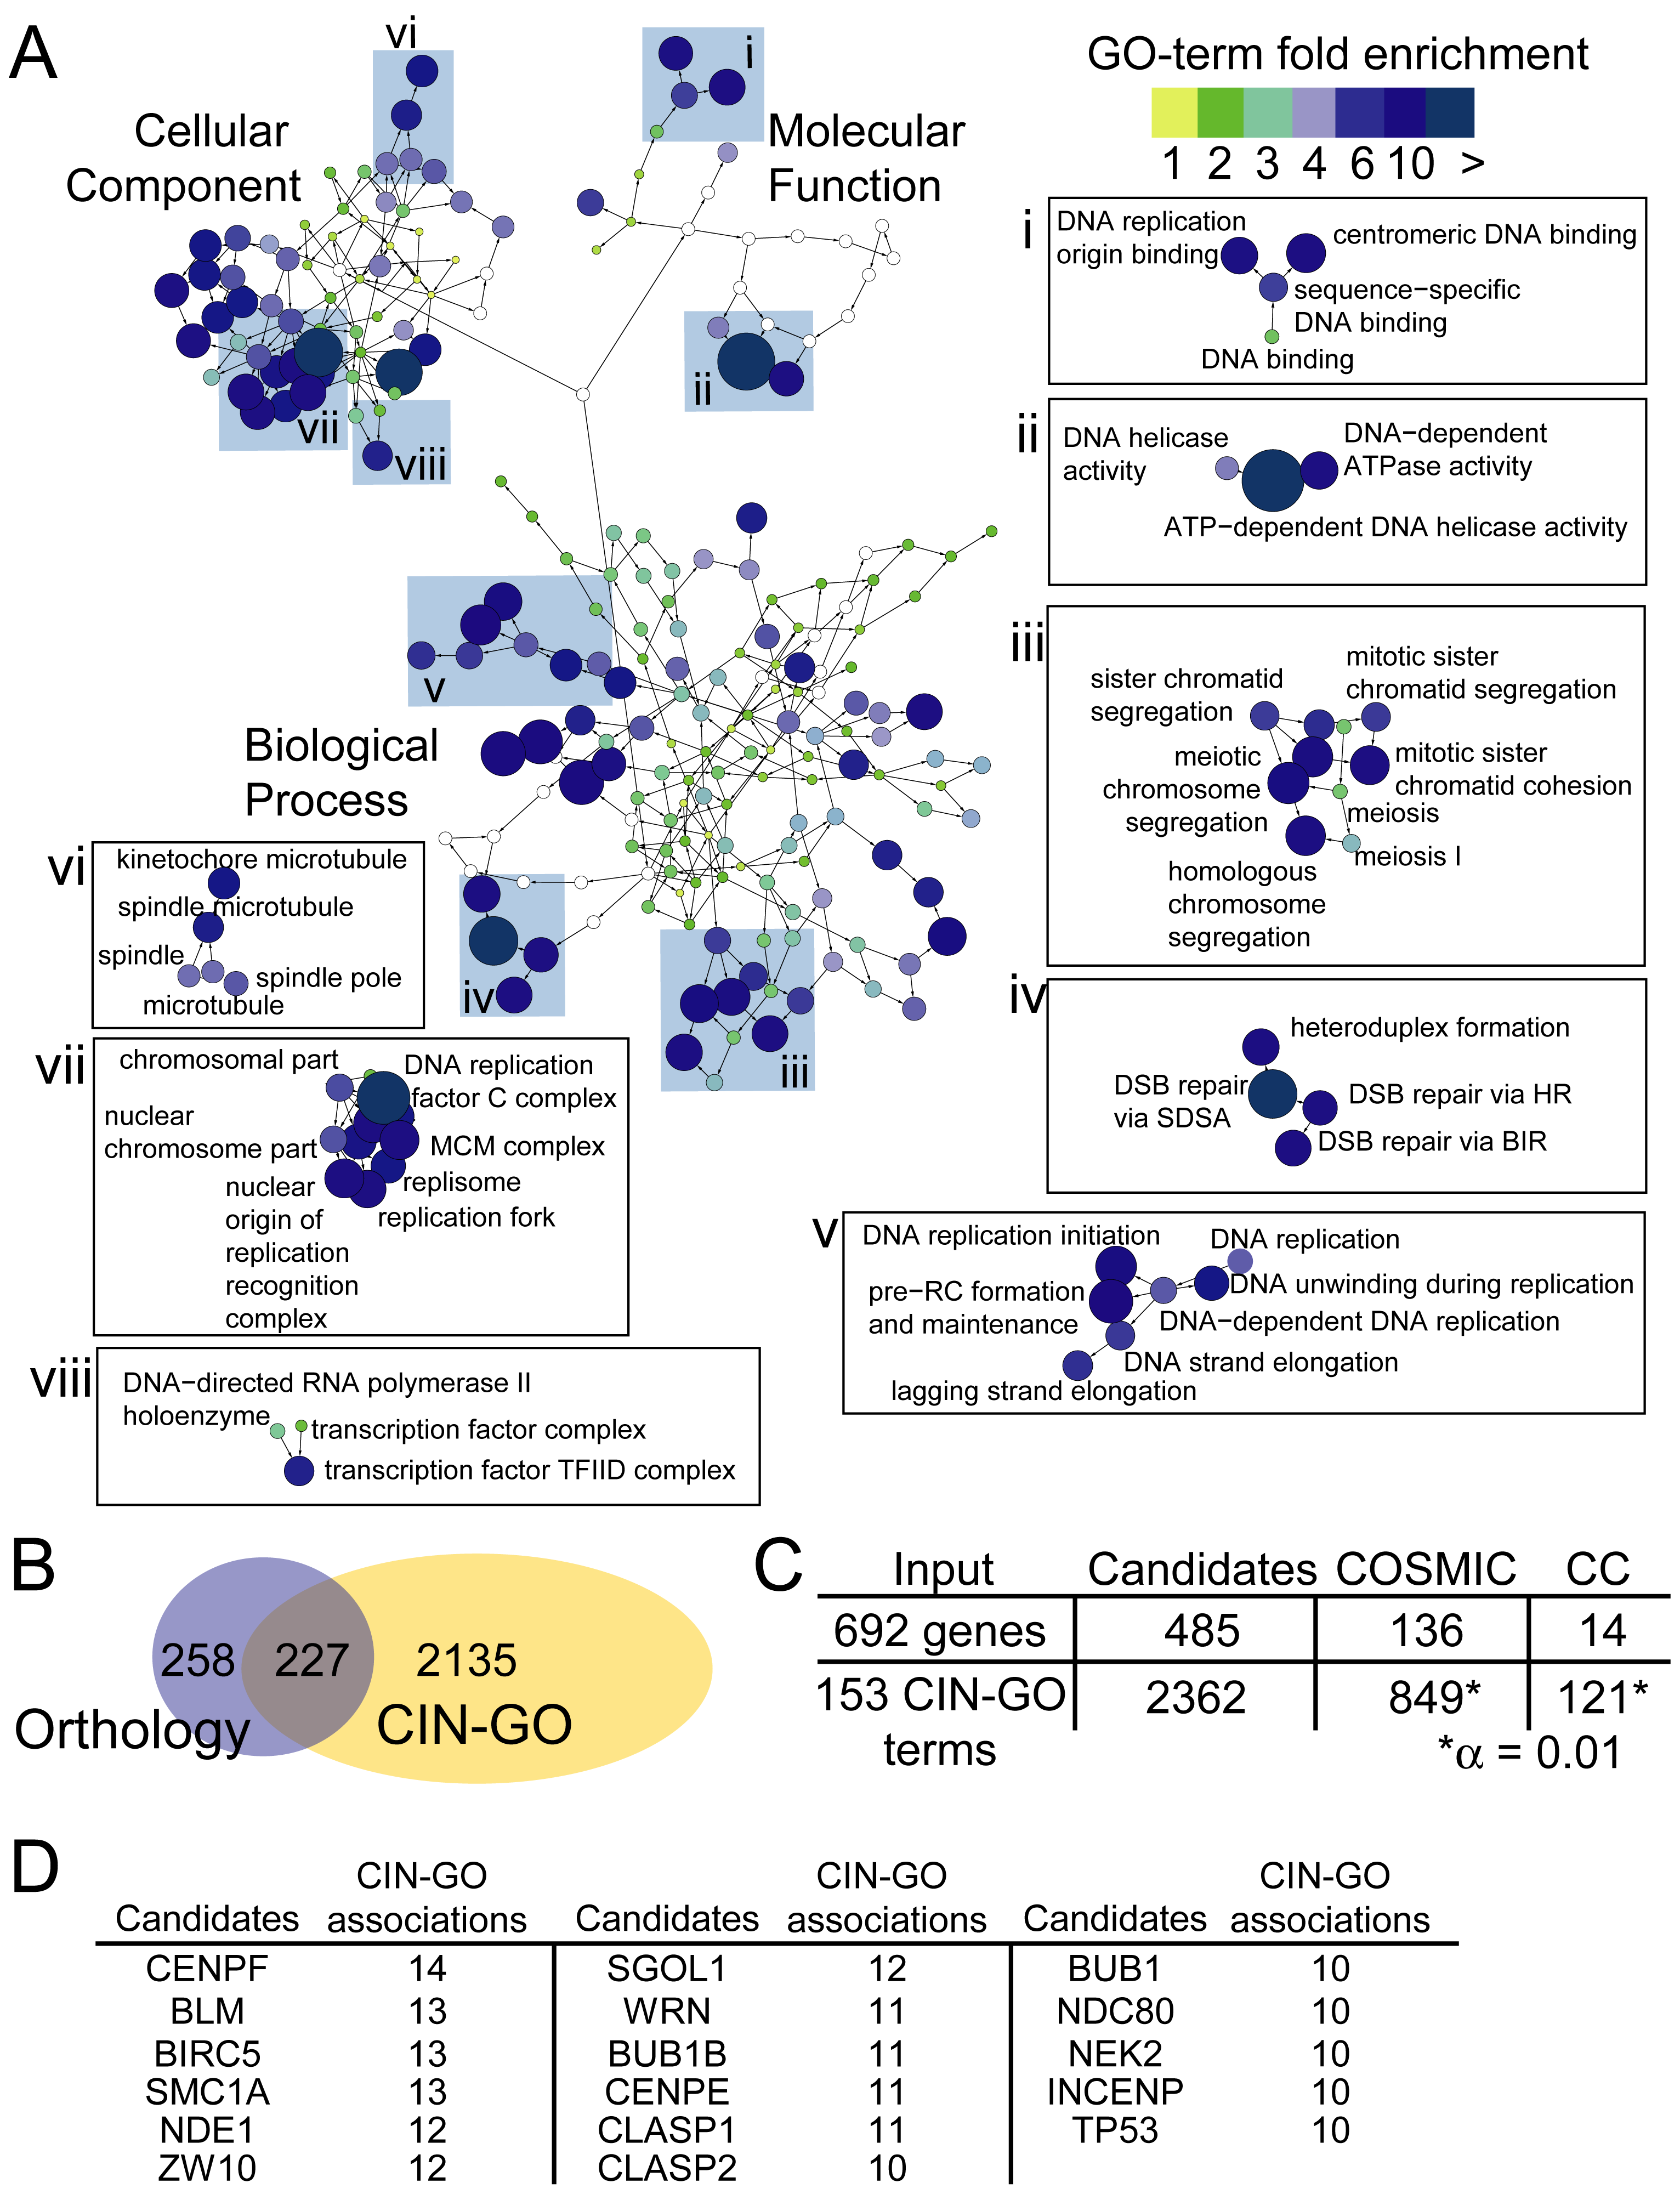 A constellation of GO-terms define CIN pathways and human CIN candidates.